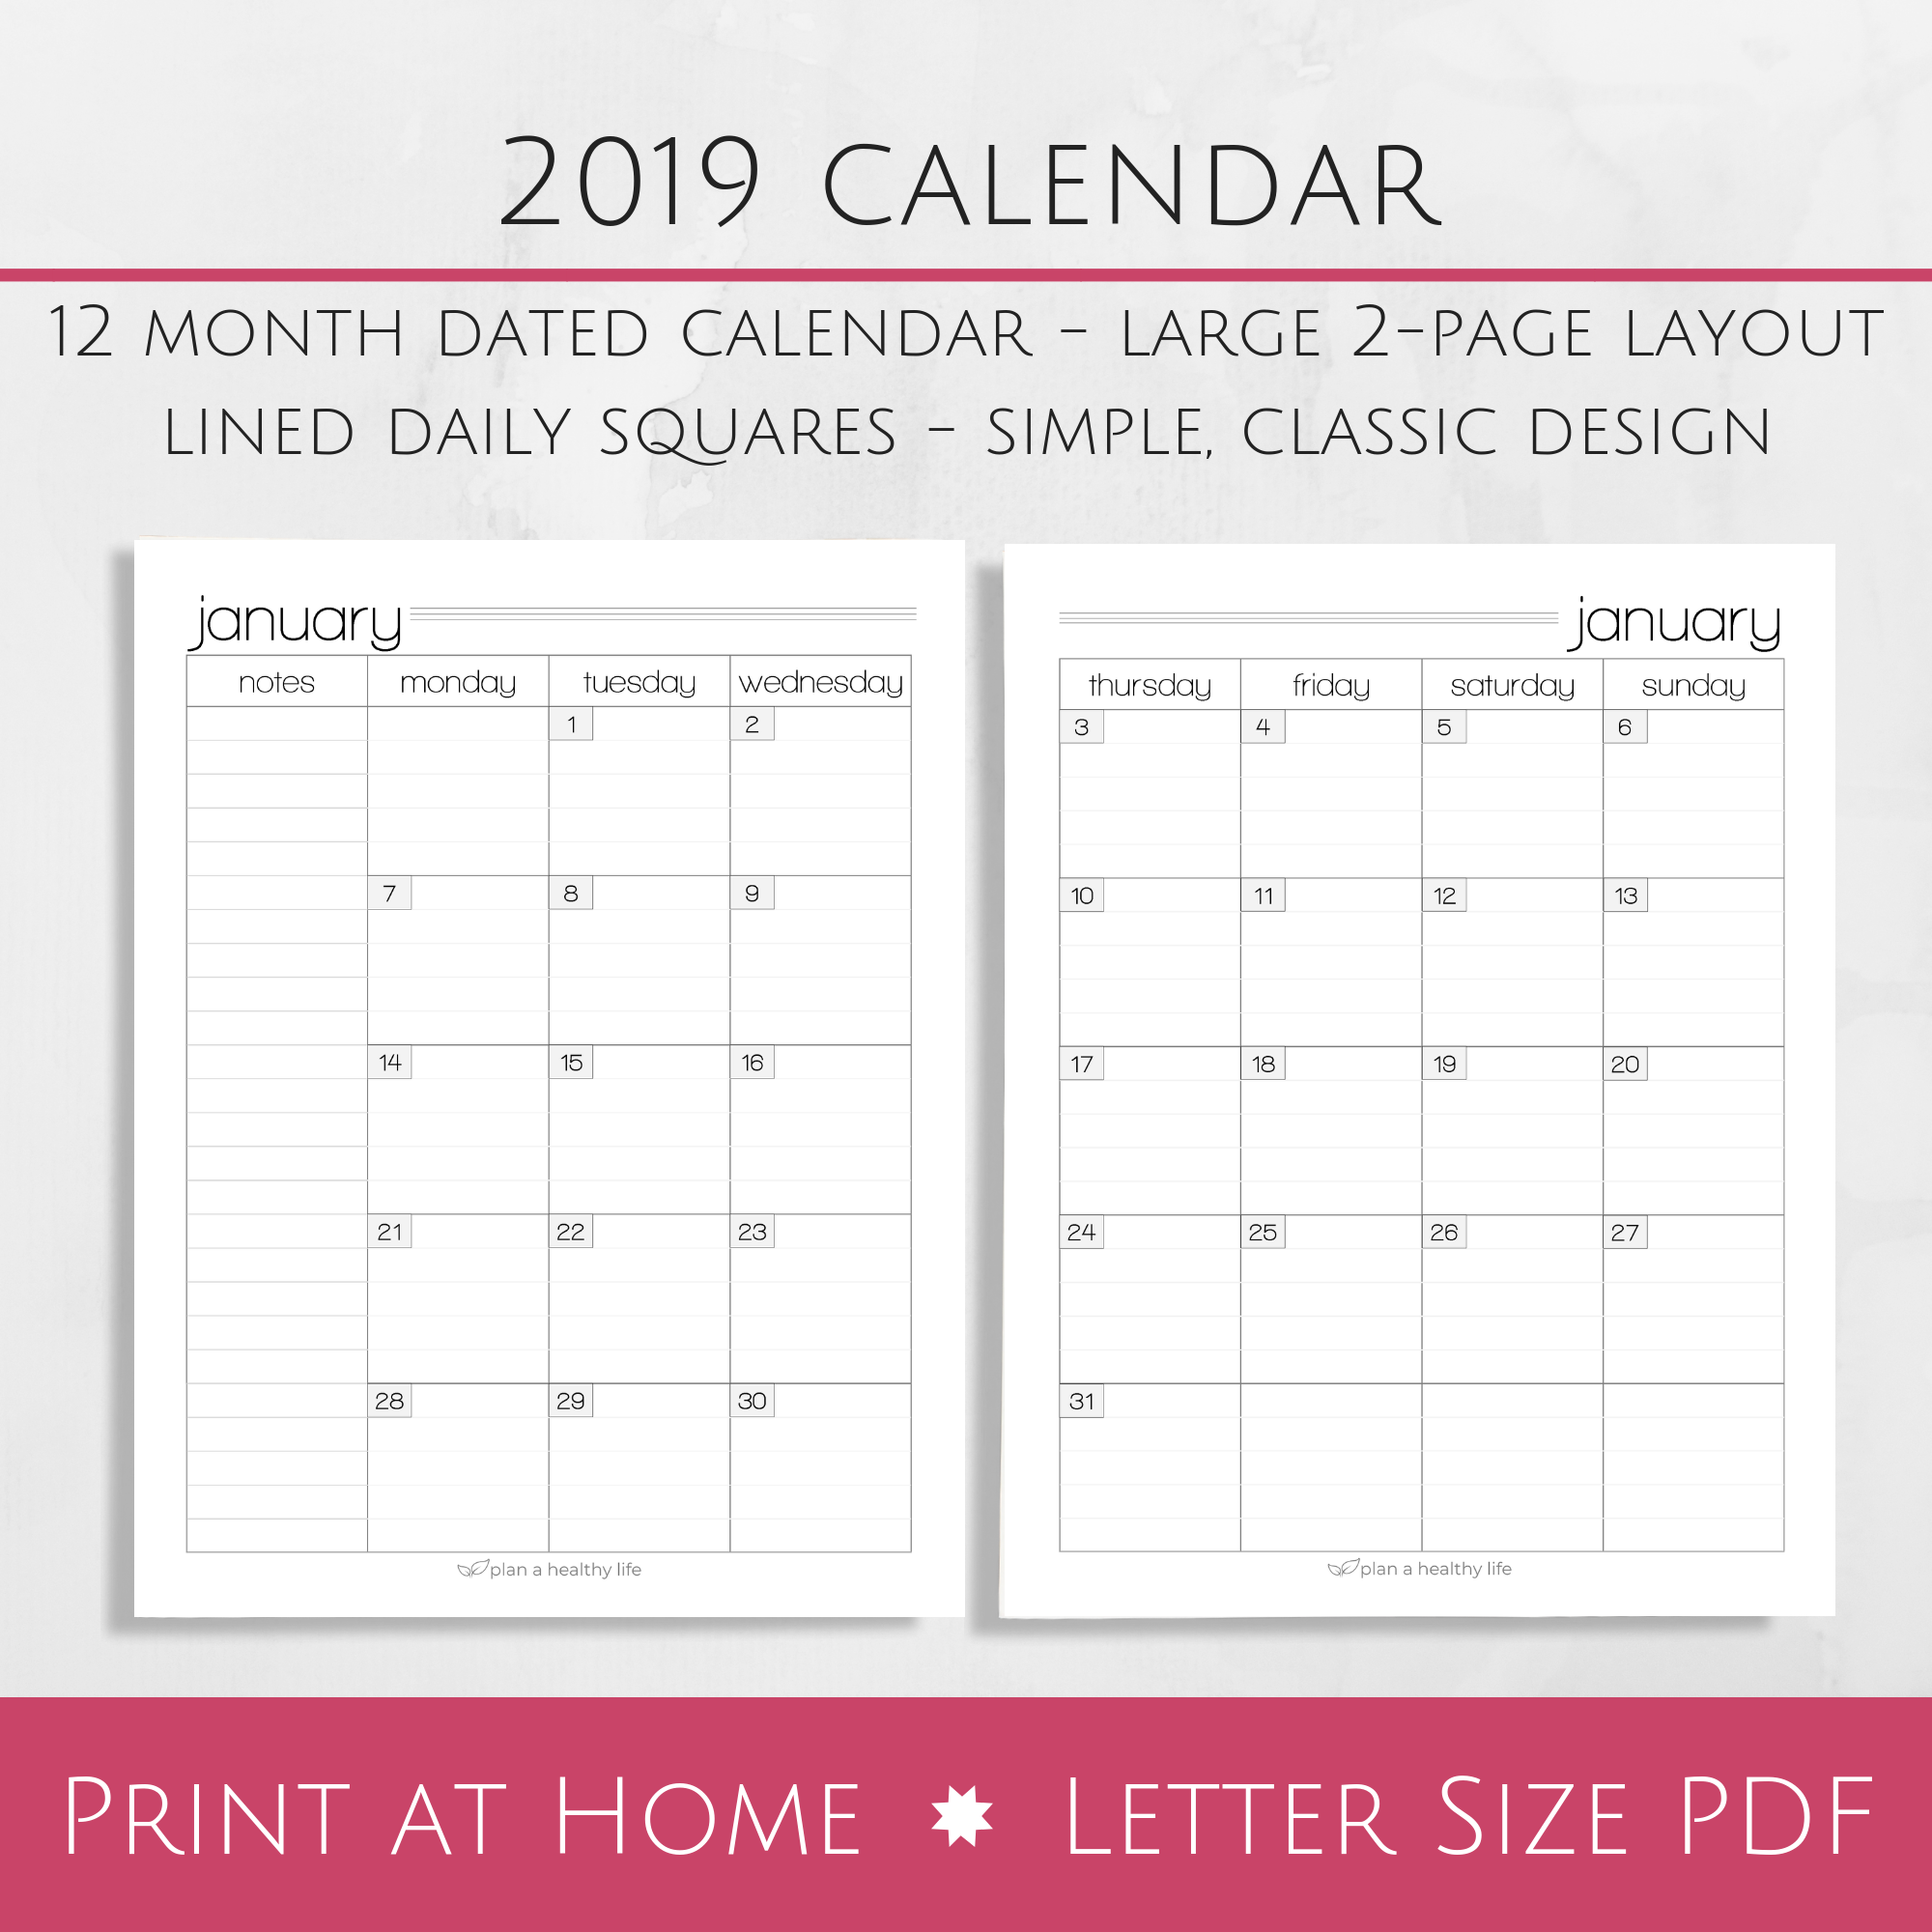 printable 2019 monthly calendar large 2 page layout plan a rh planahealthylife com